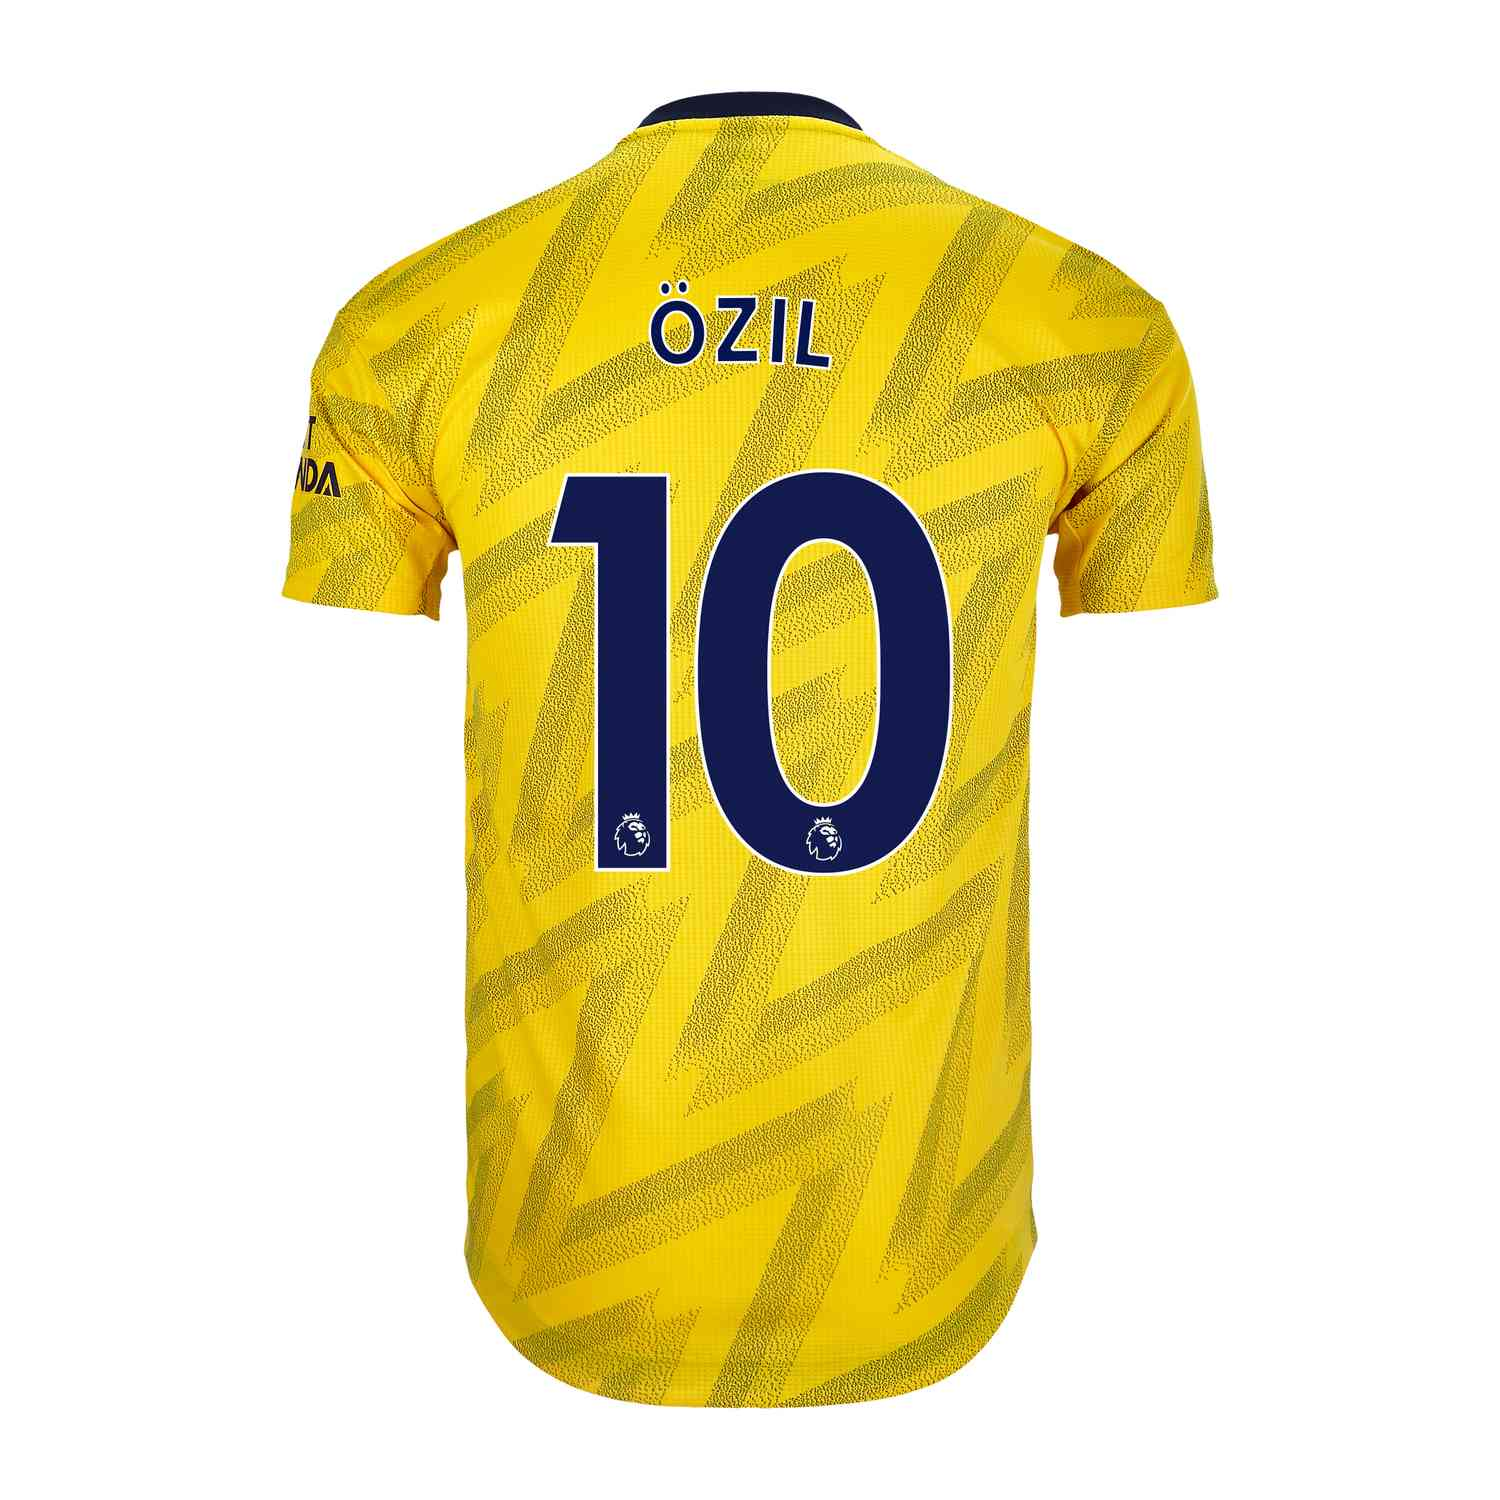 separation shoes 2c8b1 627a6 2019/20 Mesut Ozil Arsenal Away Authentic Jersey